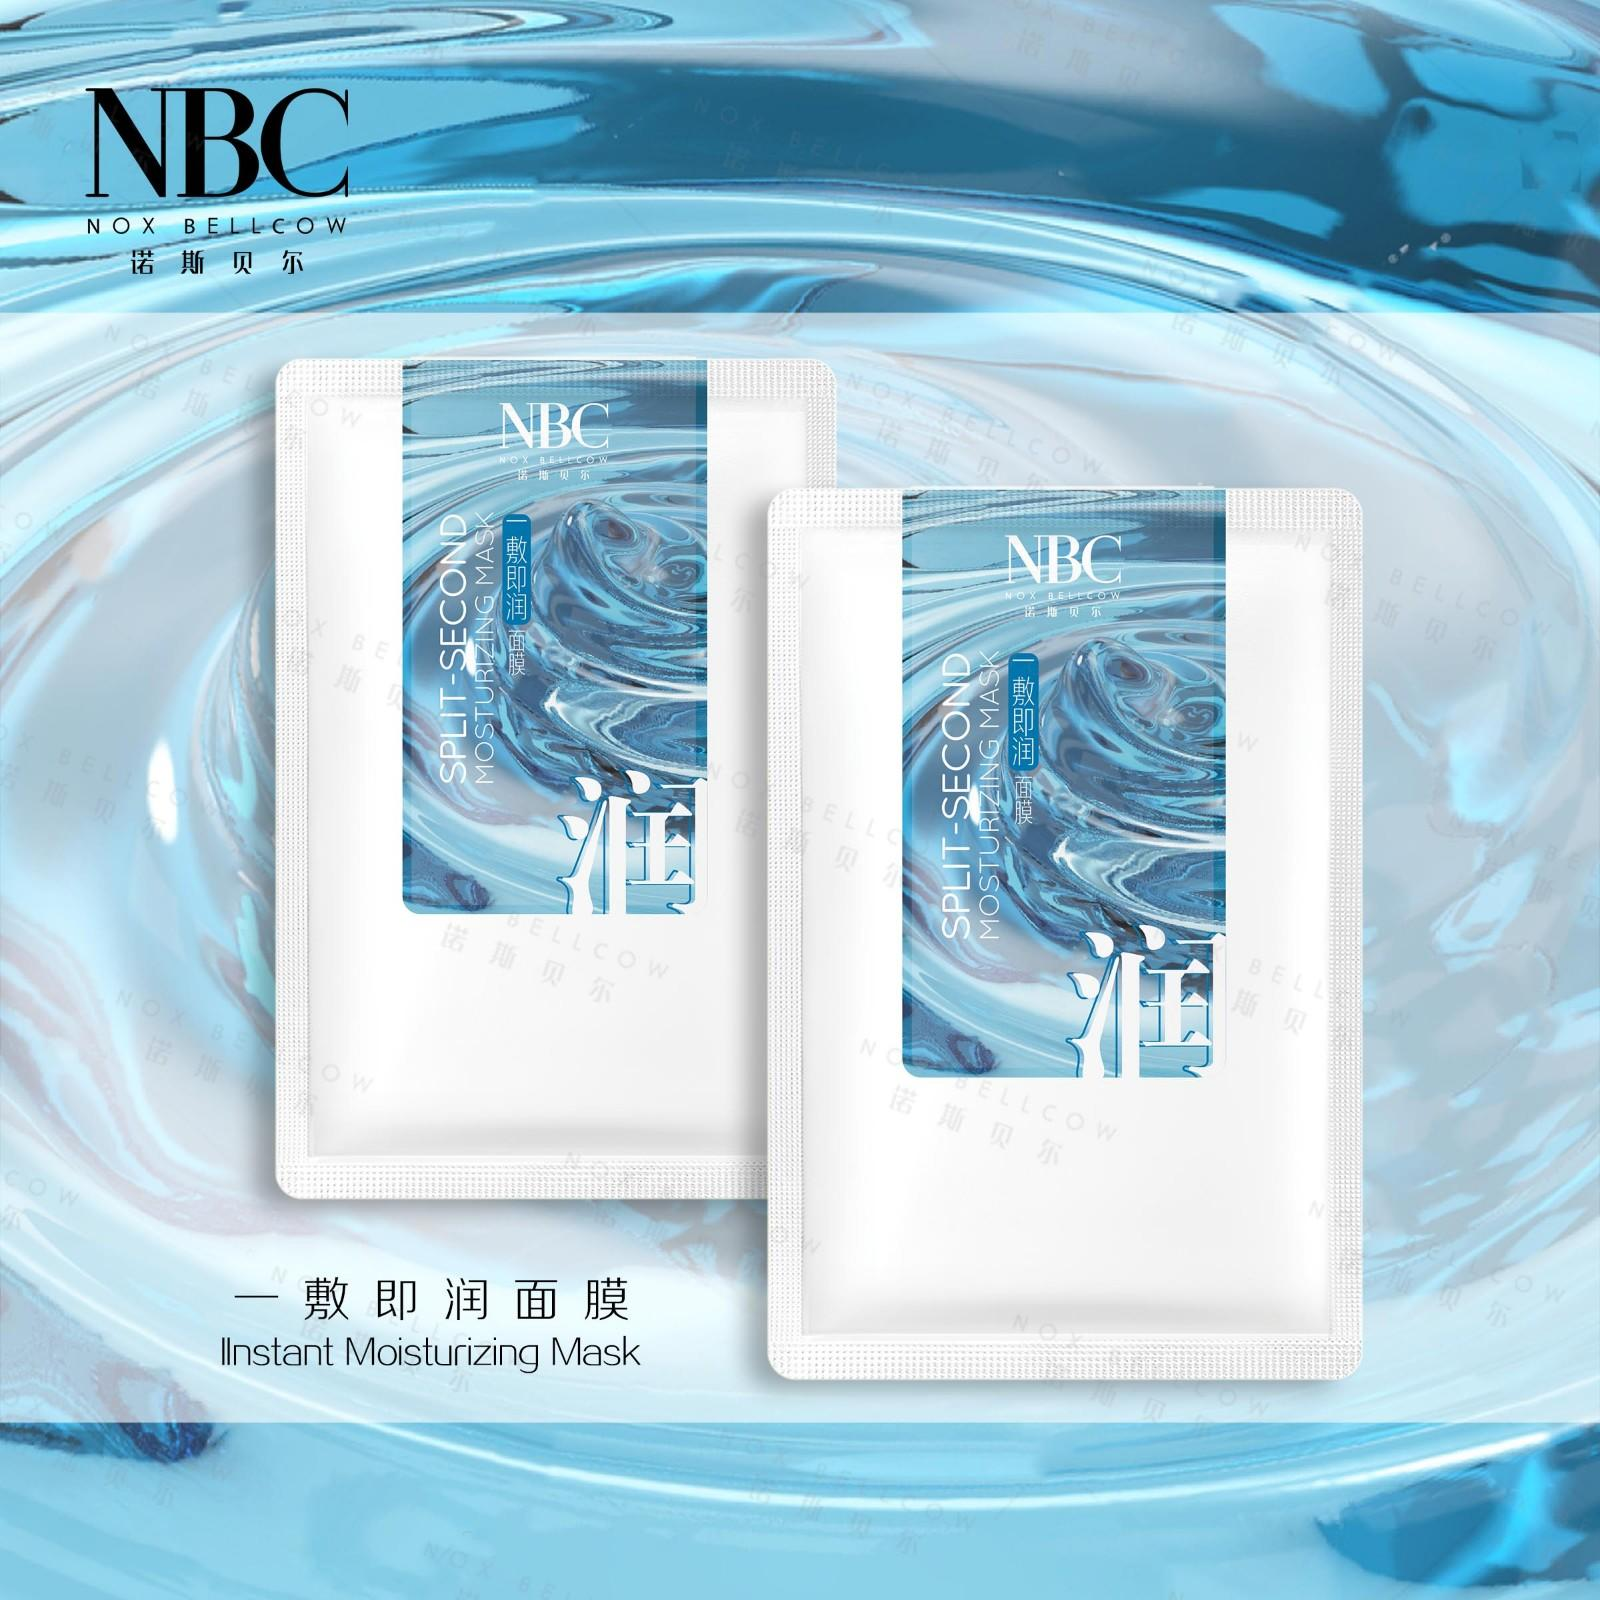 NOX BELLCOW Skin care wipes for business for ladies-2